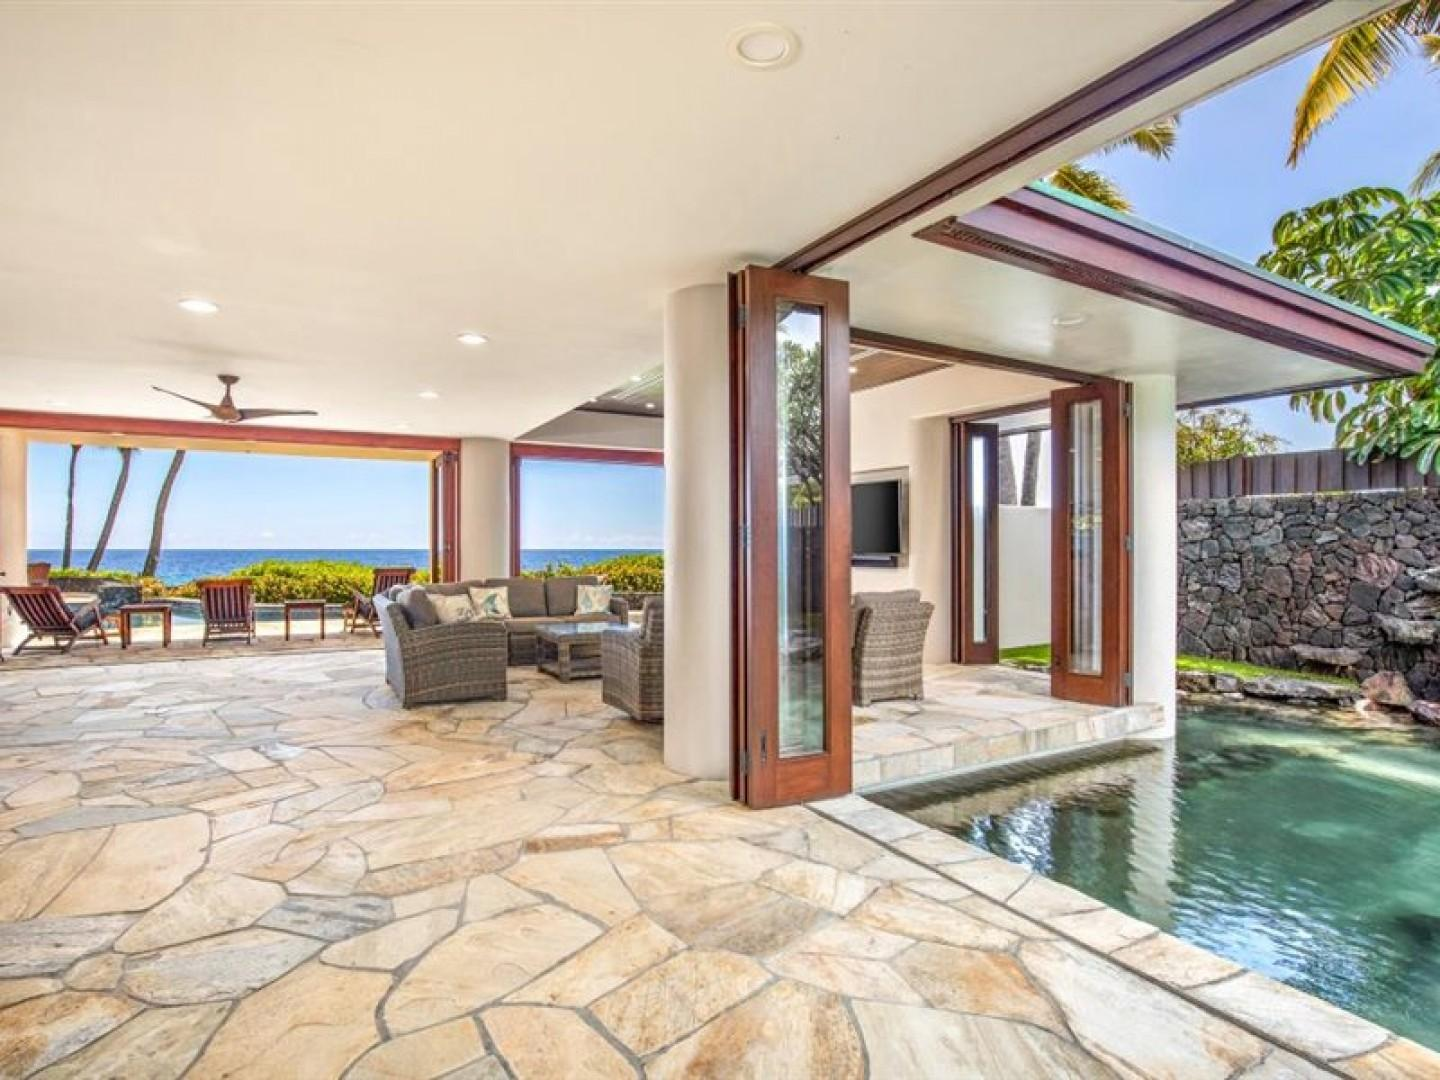 Tiled floors throughout with Hawaiian styling!